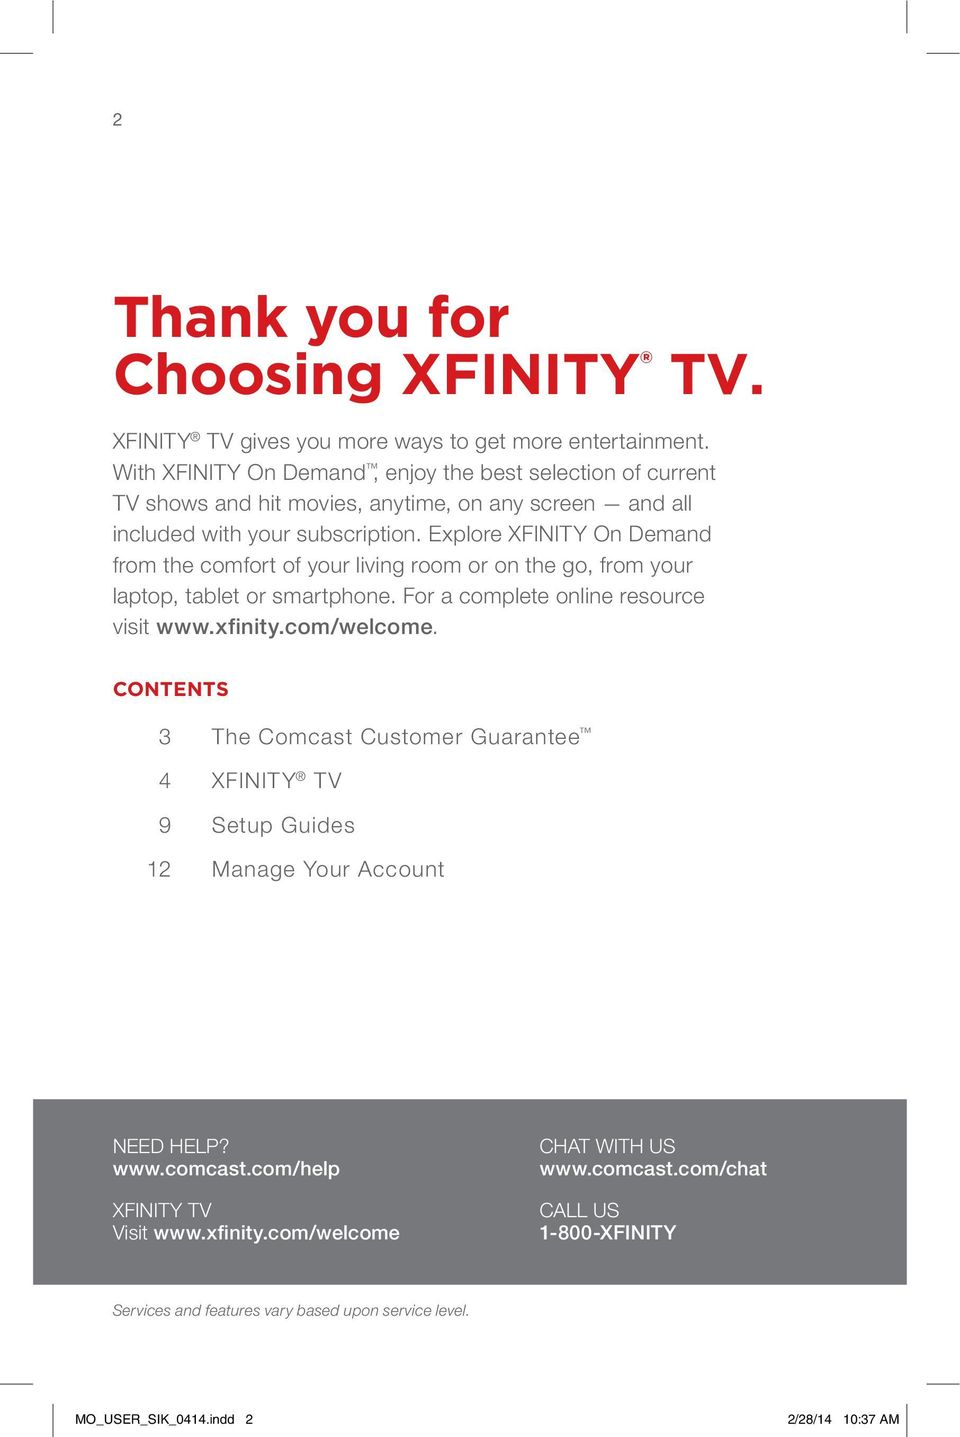 Explore XFINITY On Demand from the comfort of your living room or on the go, from your laptop, tablet or smartphone. For a complete online resource visit www.xfinity.com/welcome.